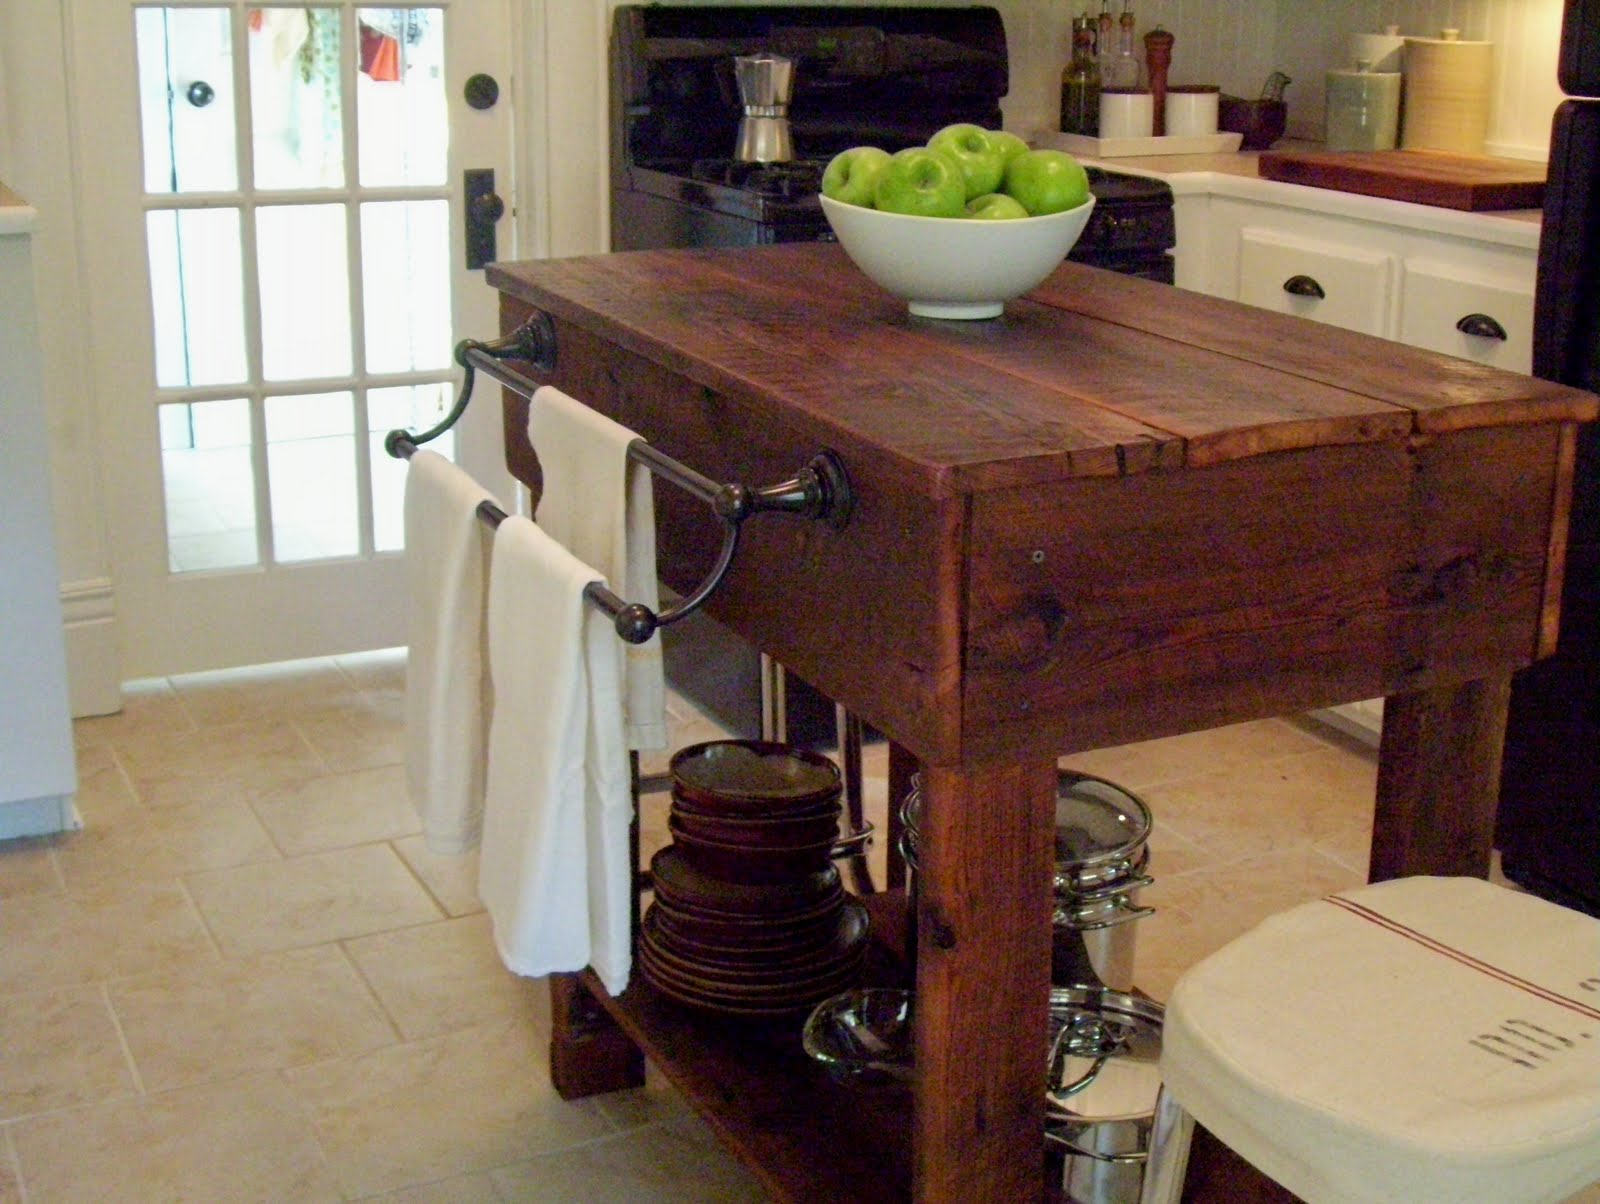 Diy rustic wood table - How To Build A Rustic Kitchen Table Island